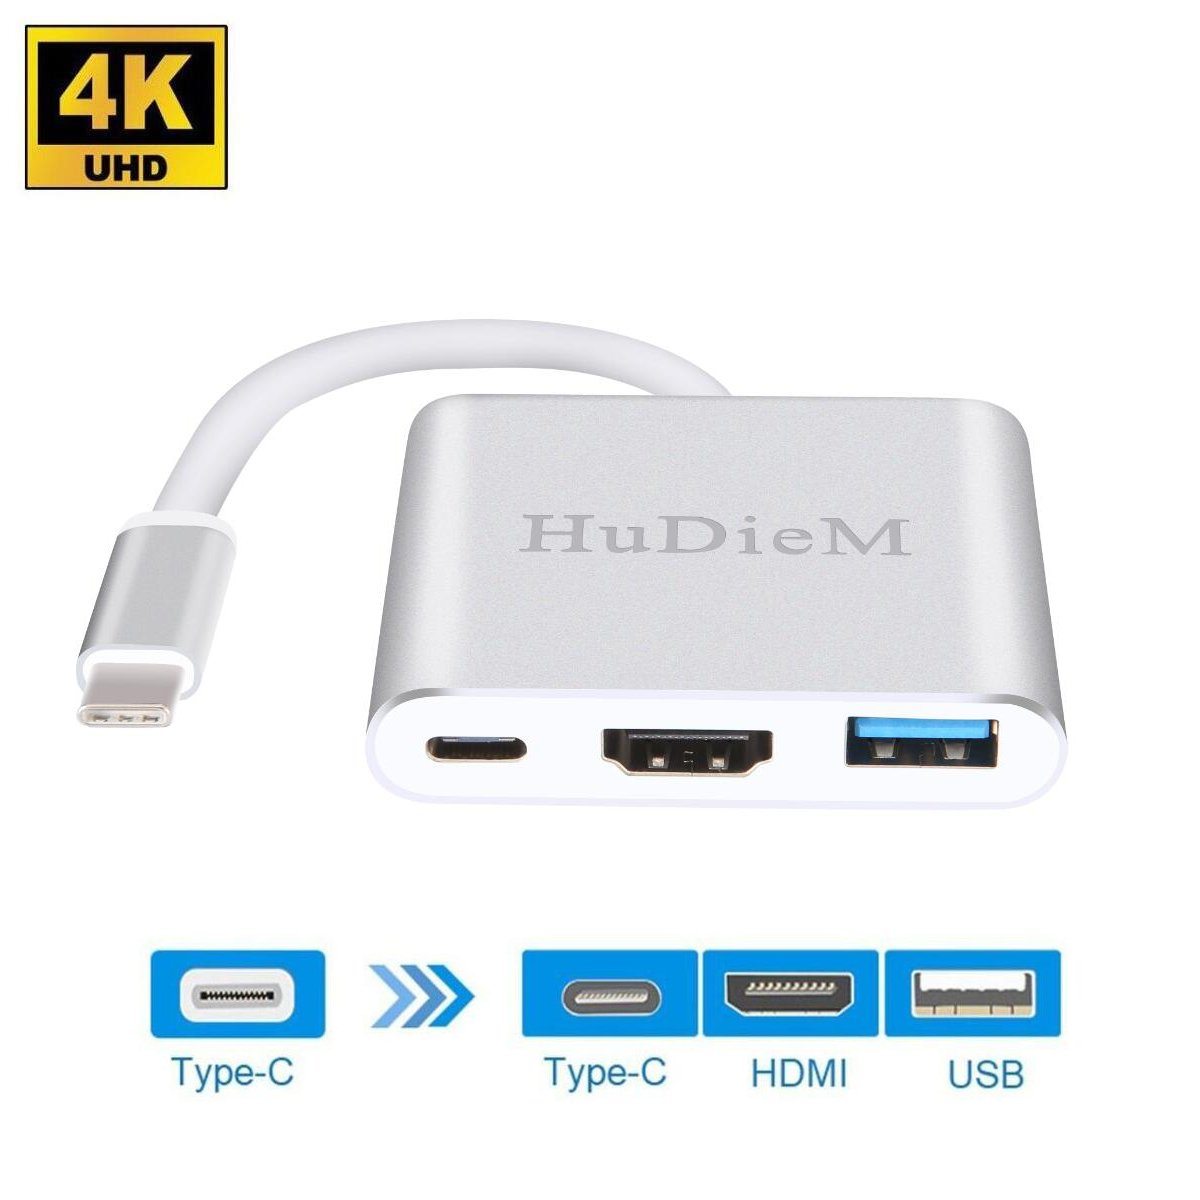 USB-C to HDMI Adapter 4K, HuDieM USB 3.1 Type C to HDMI Multiport AV Converter with USB 3.0 Port and USB C Charging Port for Macbook/Chromebook Pixel/Dell XPS13/Samsung Galaxy s8/s8 Plus (Silver)